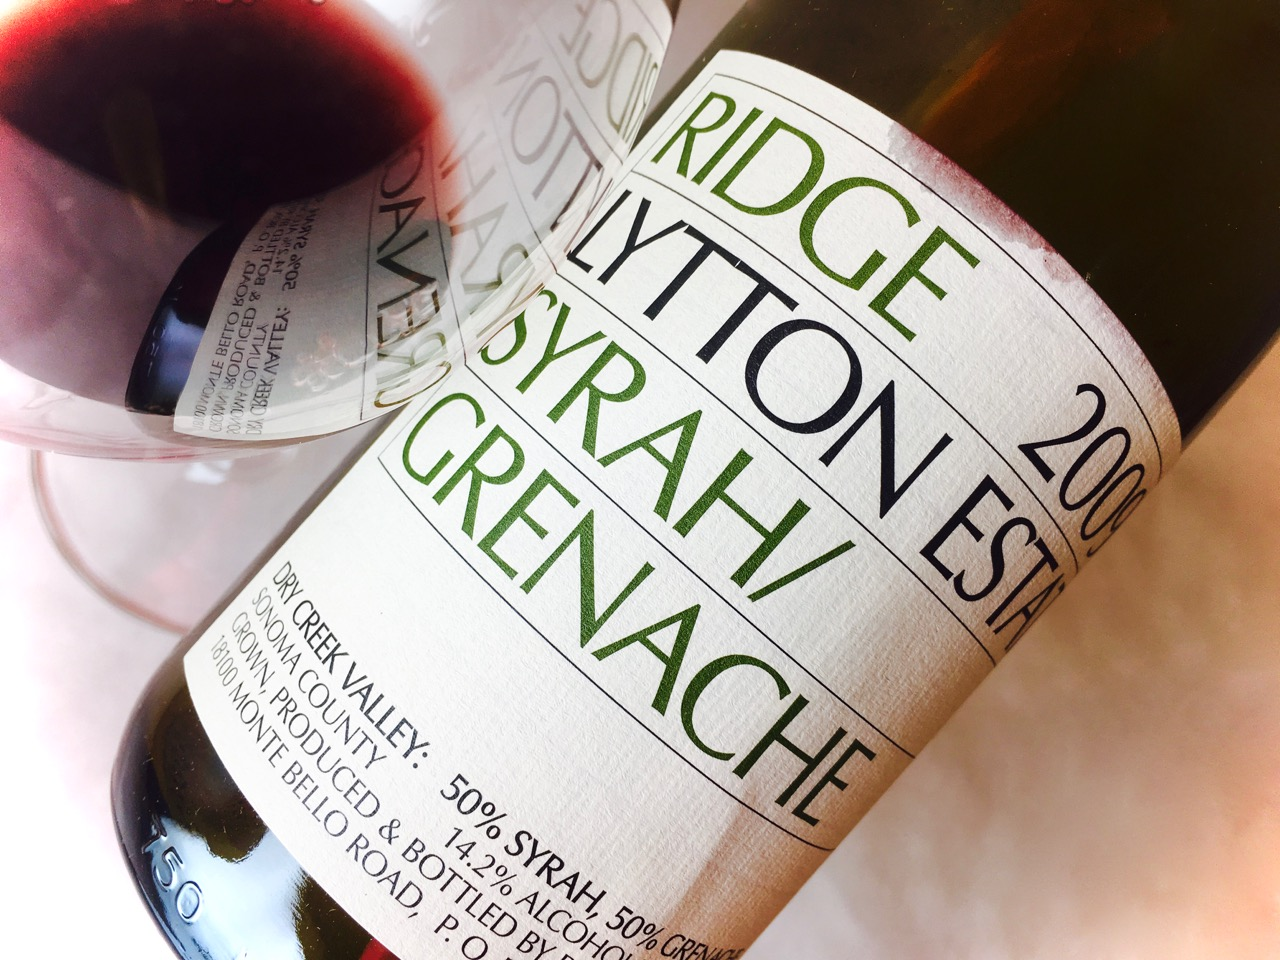 2009 Ridge Syrah Grenache Lytton Estate Dry Creek Valley